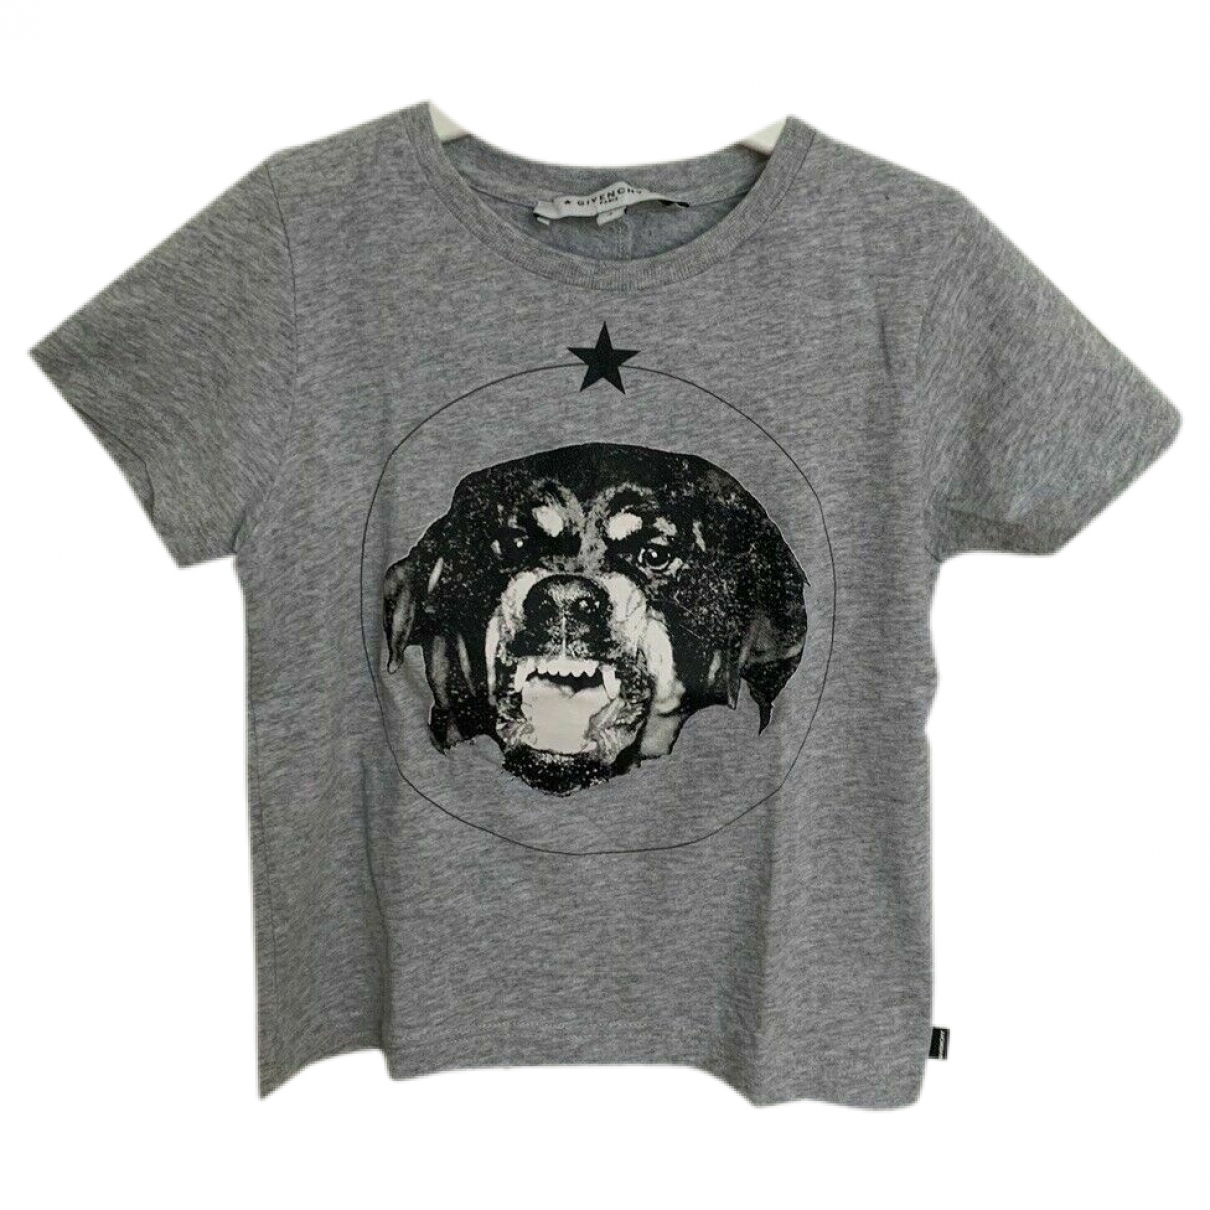 Givenchy \N Grey Cotton  top for Kids 4 years - up to 102cm FR